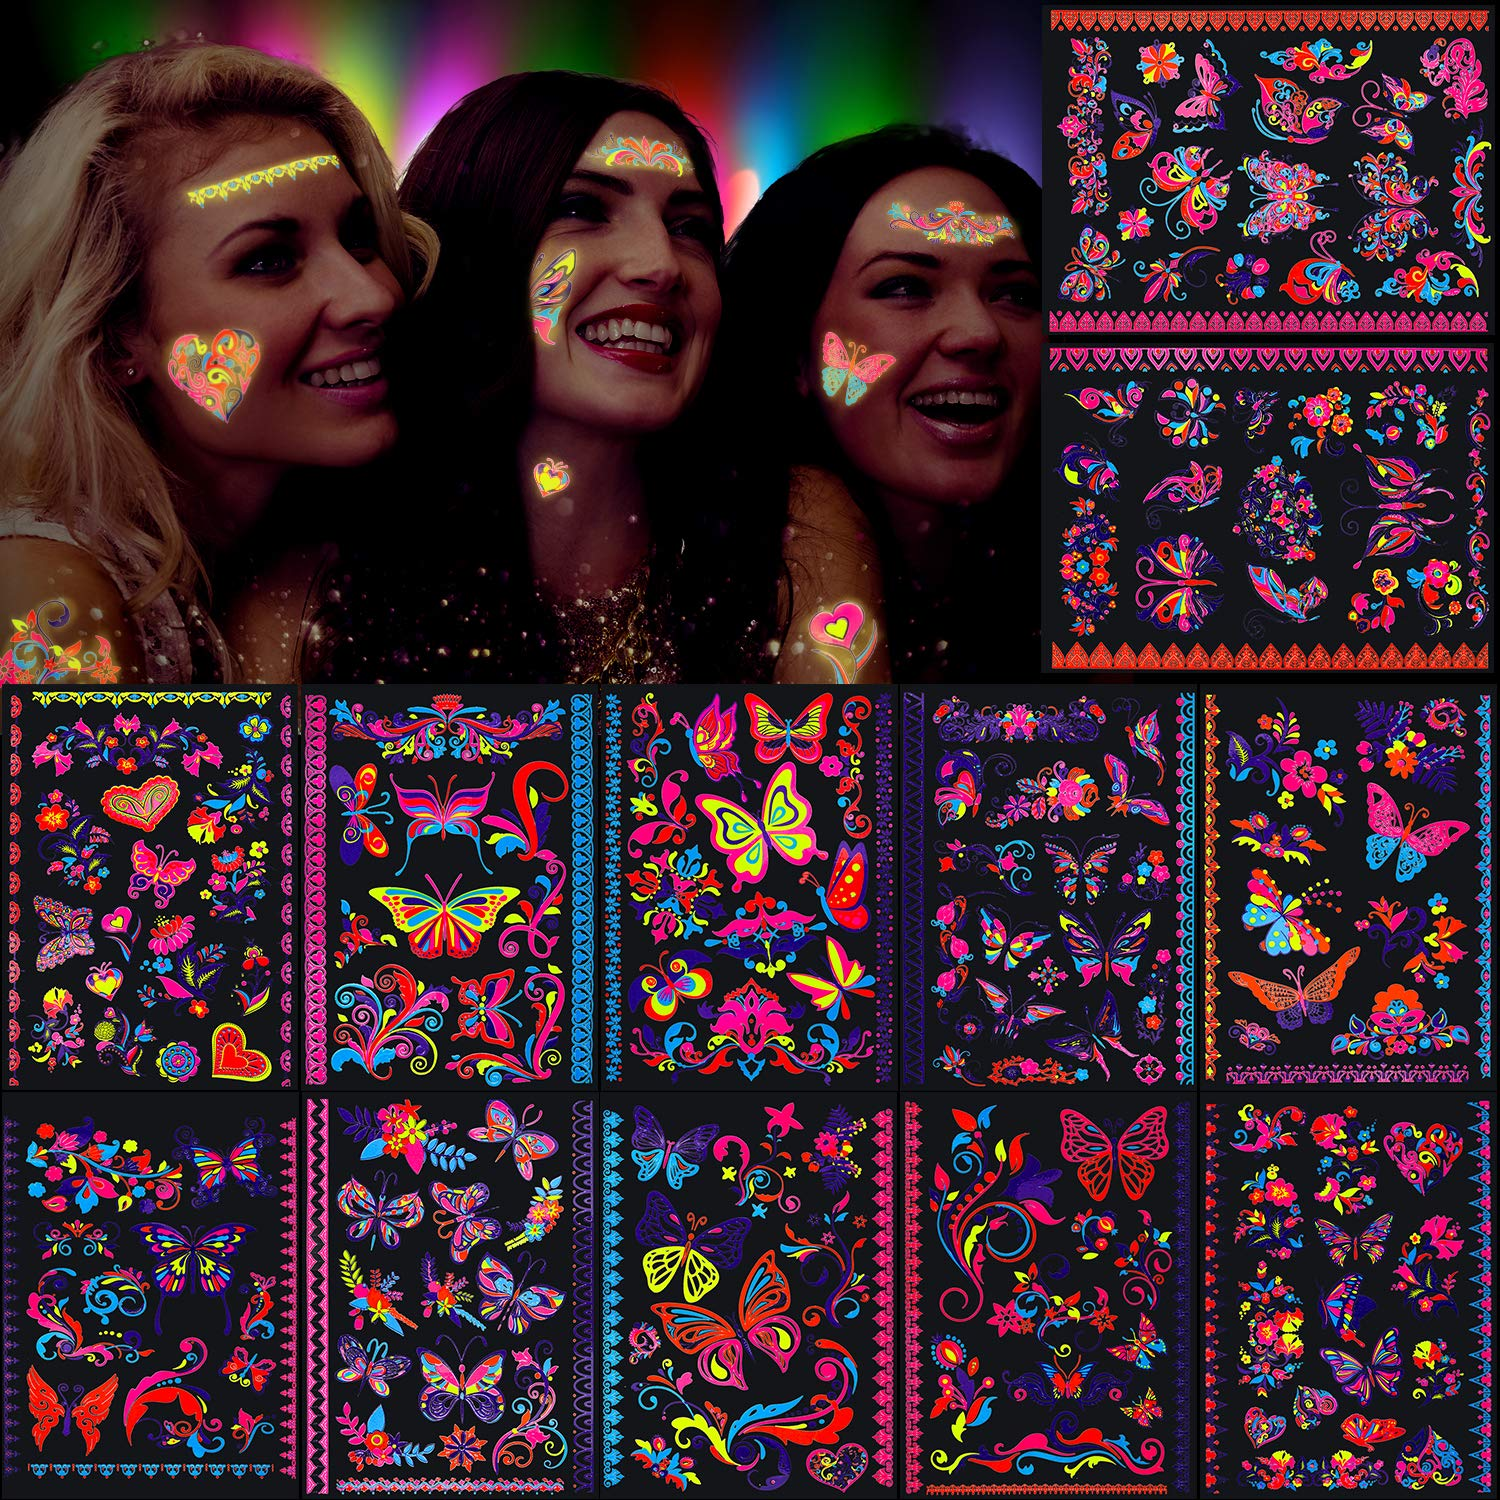 Konsait Max 45% OFF 160pcs Butterfly Tattoos UV neon G Temporary Year-end gift for